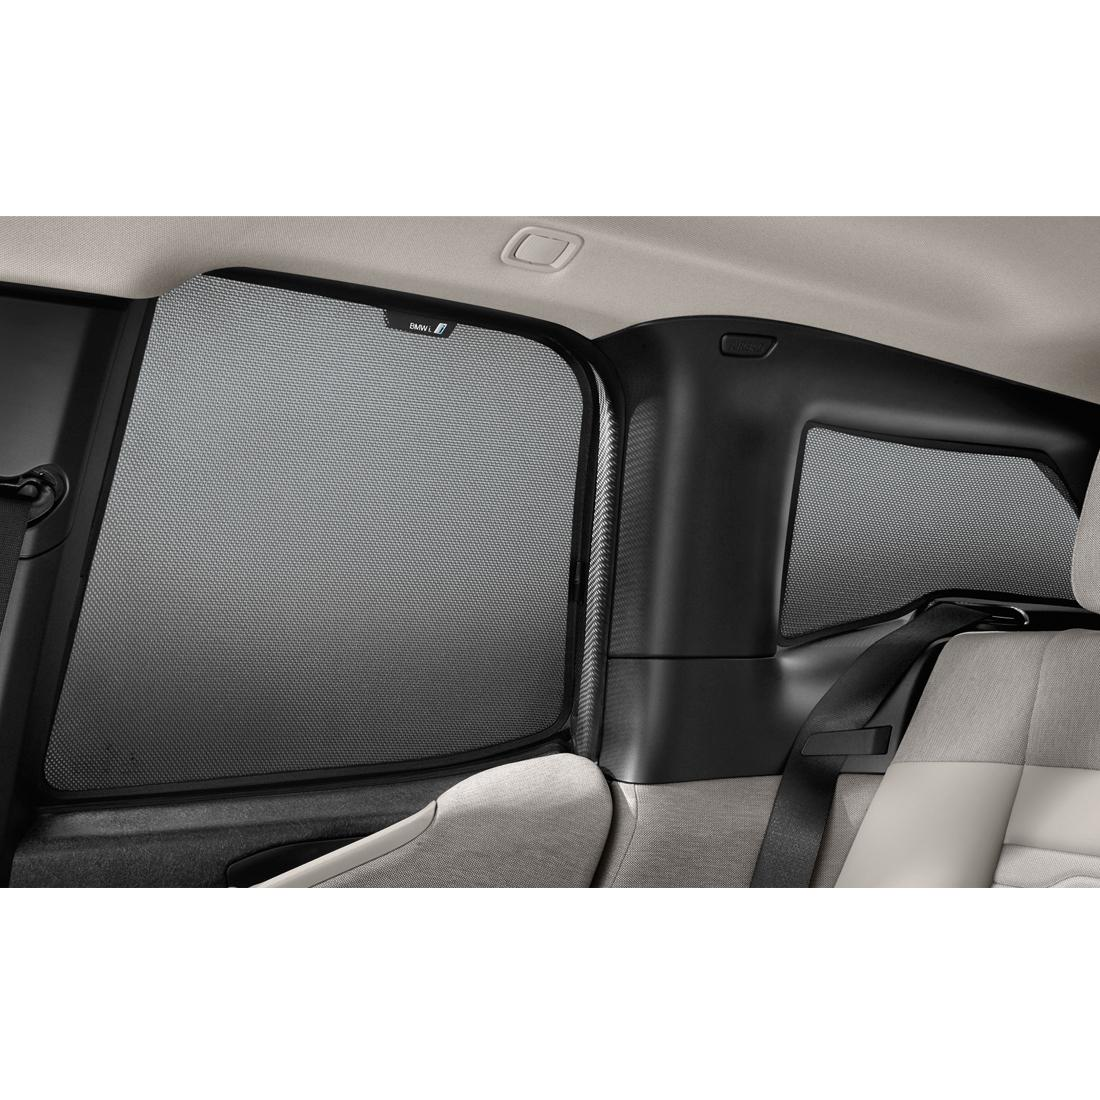 BMW i Rear Sunshades